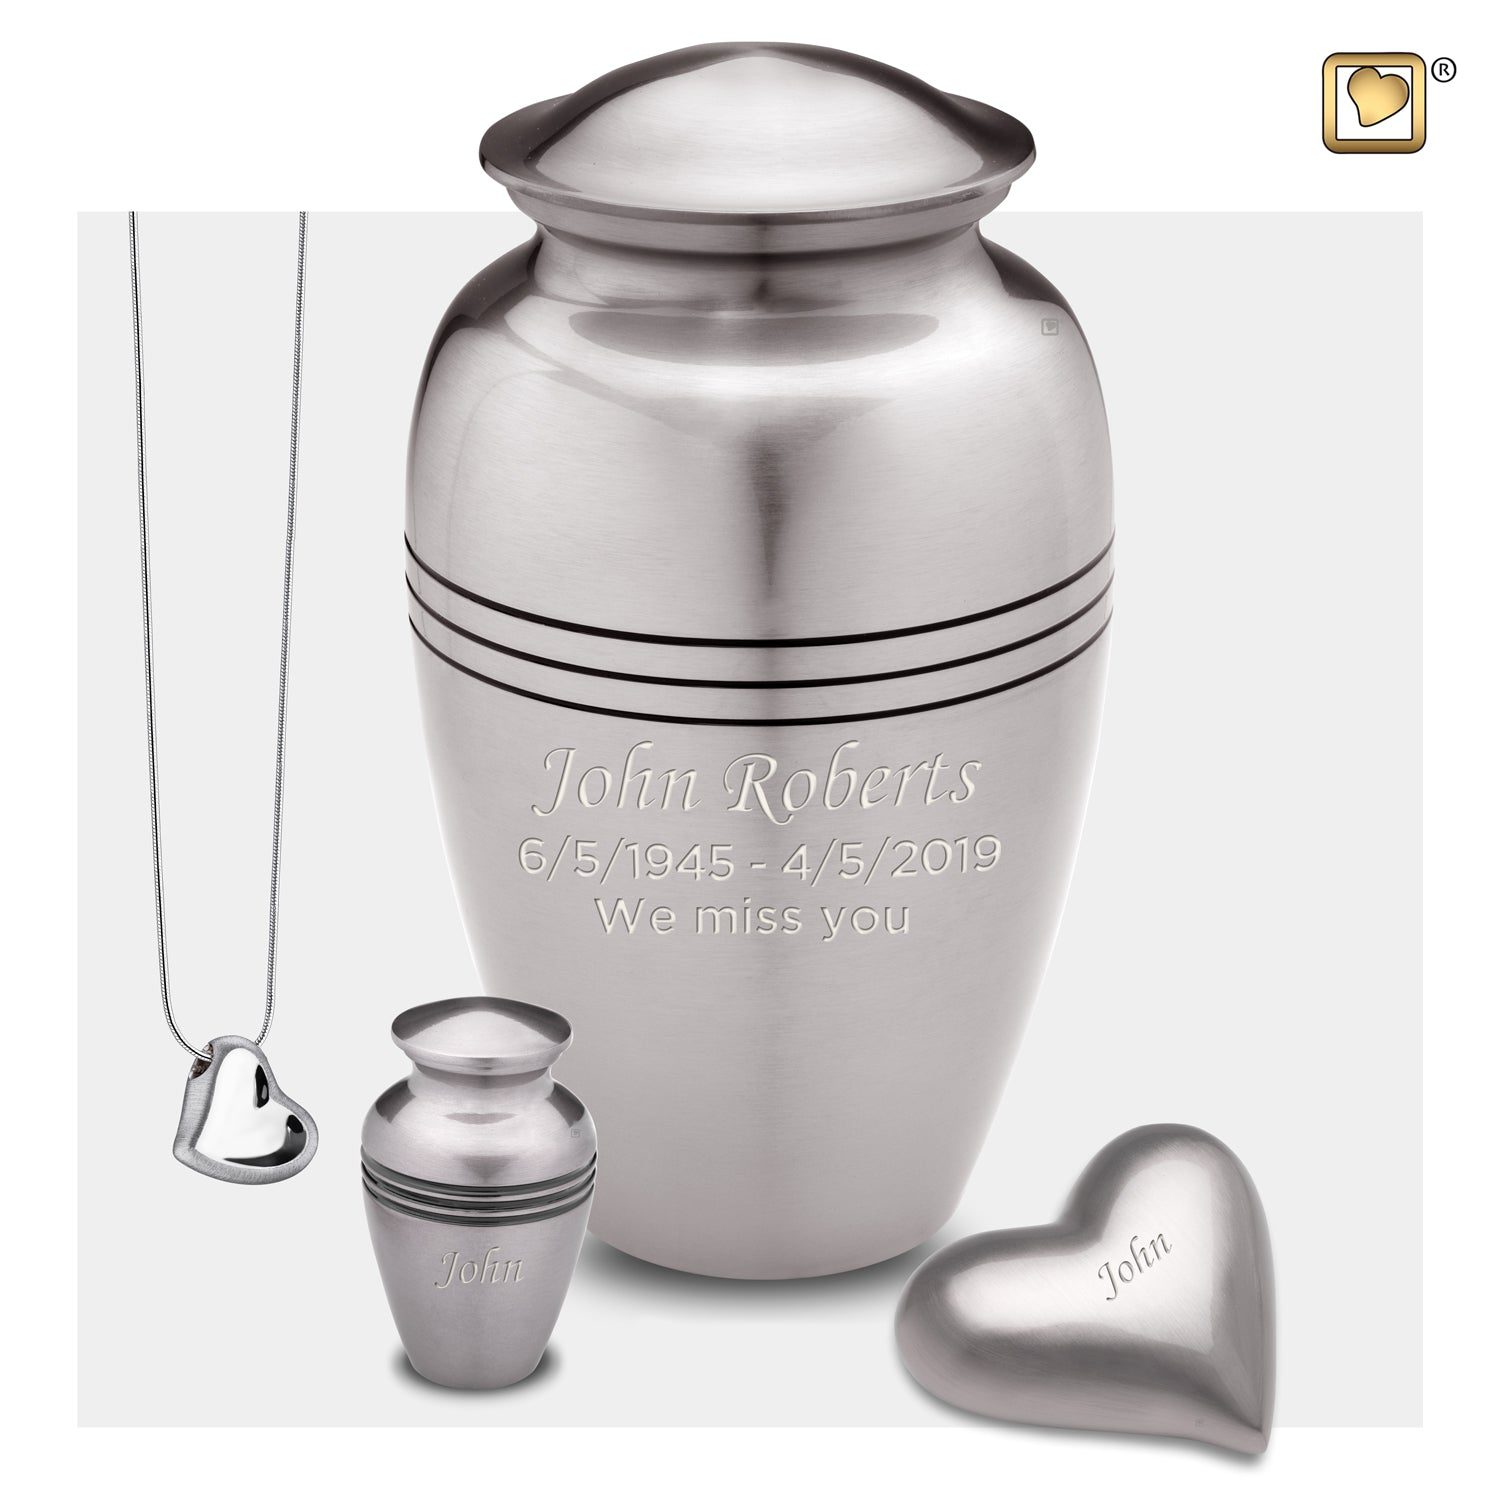 Adult Radiance Pewter Cremation Urn